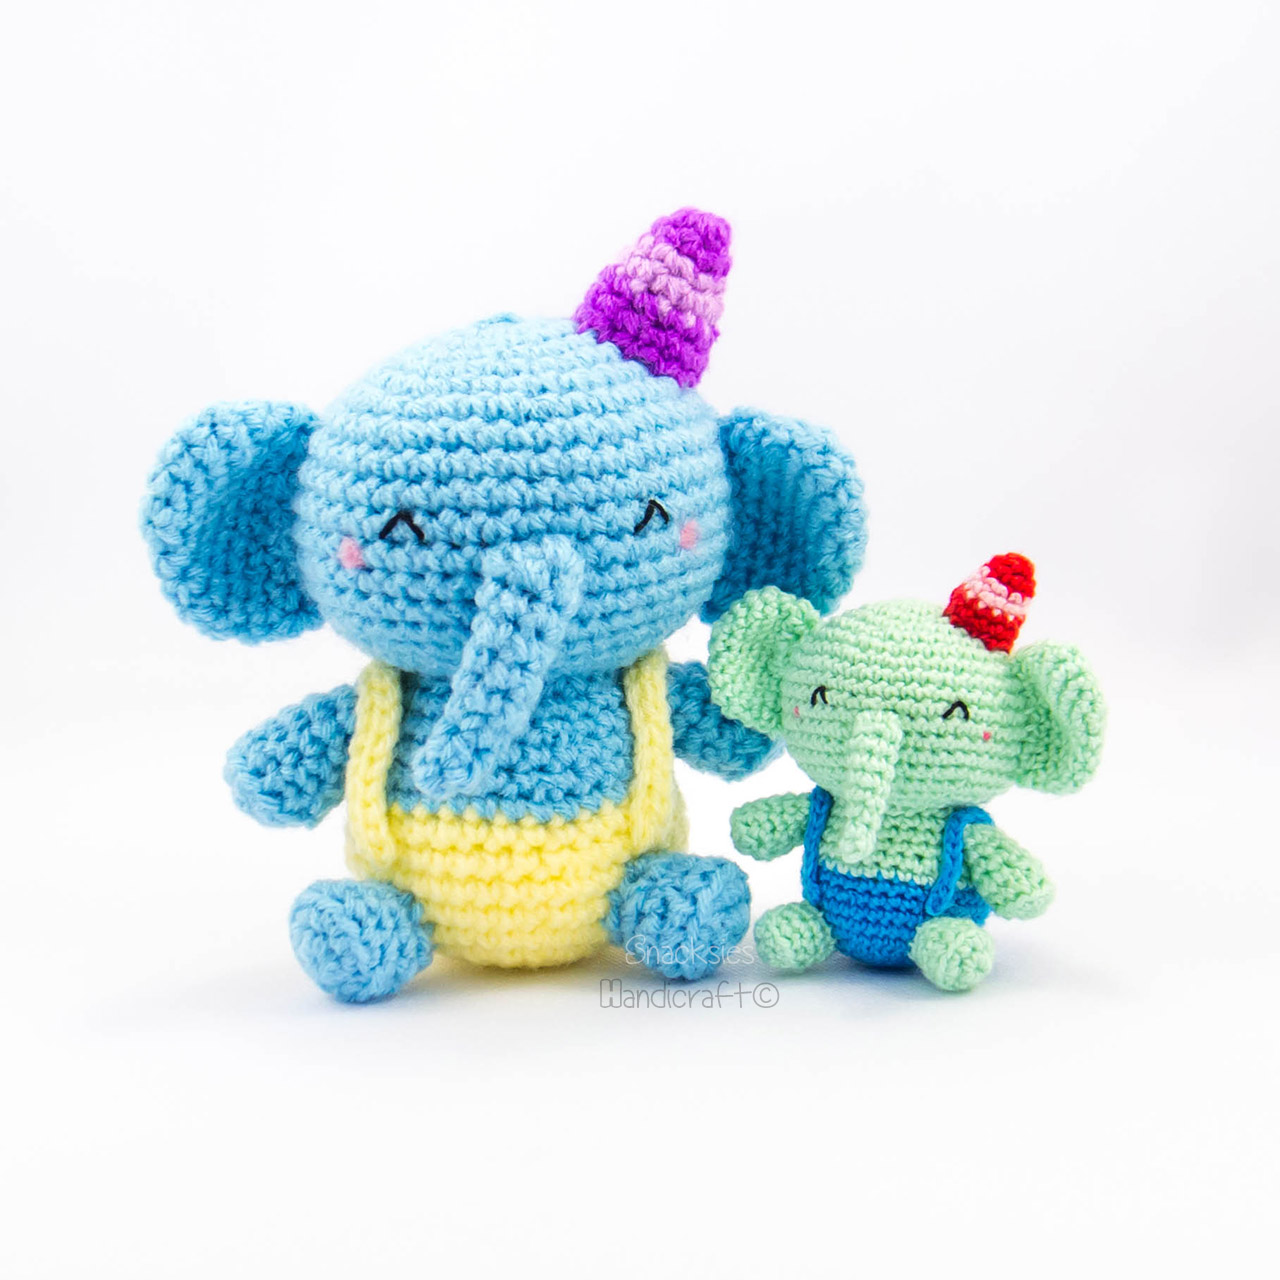 Crochet Large Stuffed Animals Patterns for Kids to Cuddle | 1280x1280